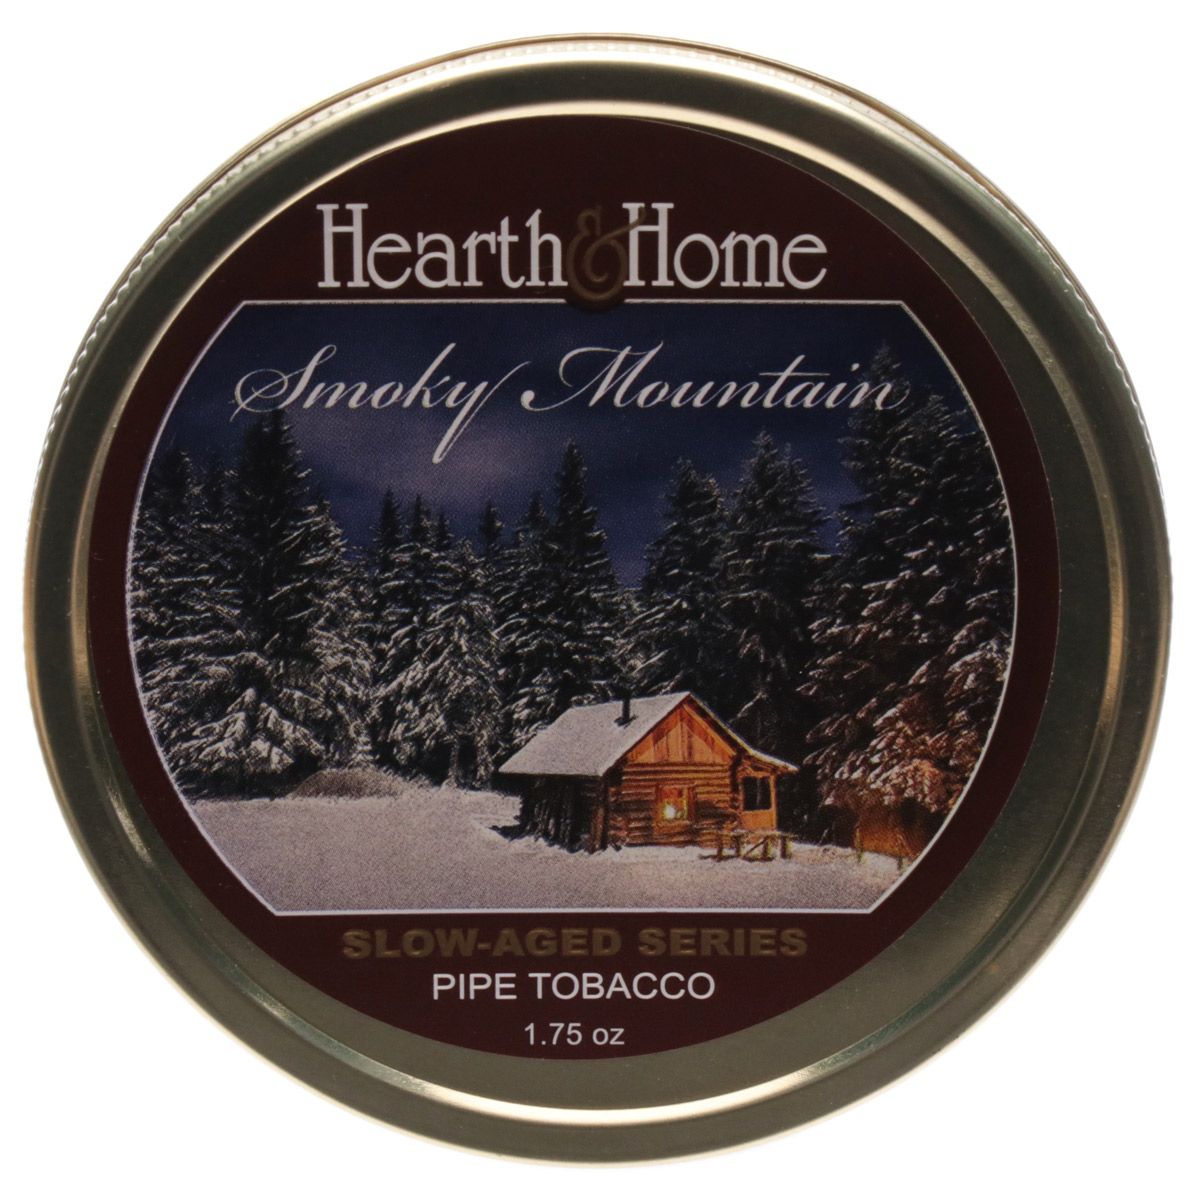 Hearth and Home Slow-Aged Smoky Mountain 1.75oz